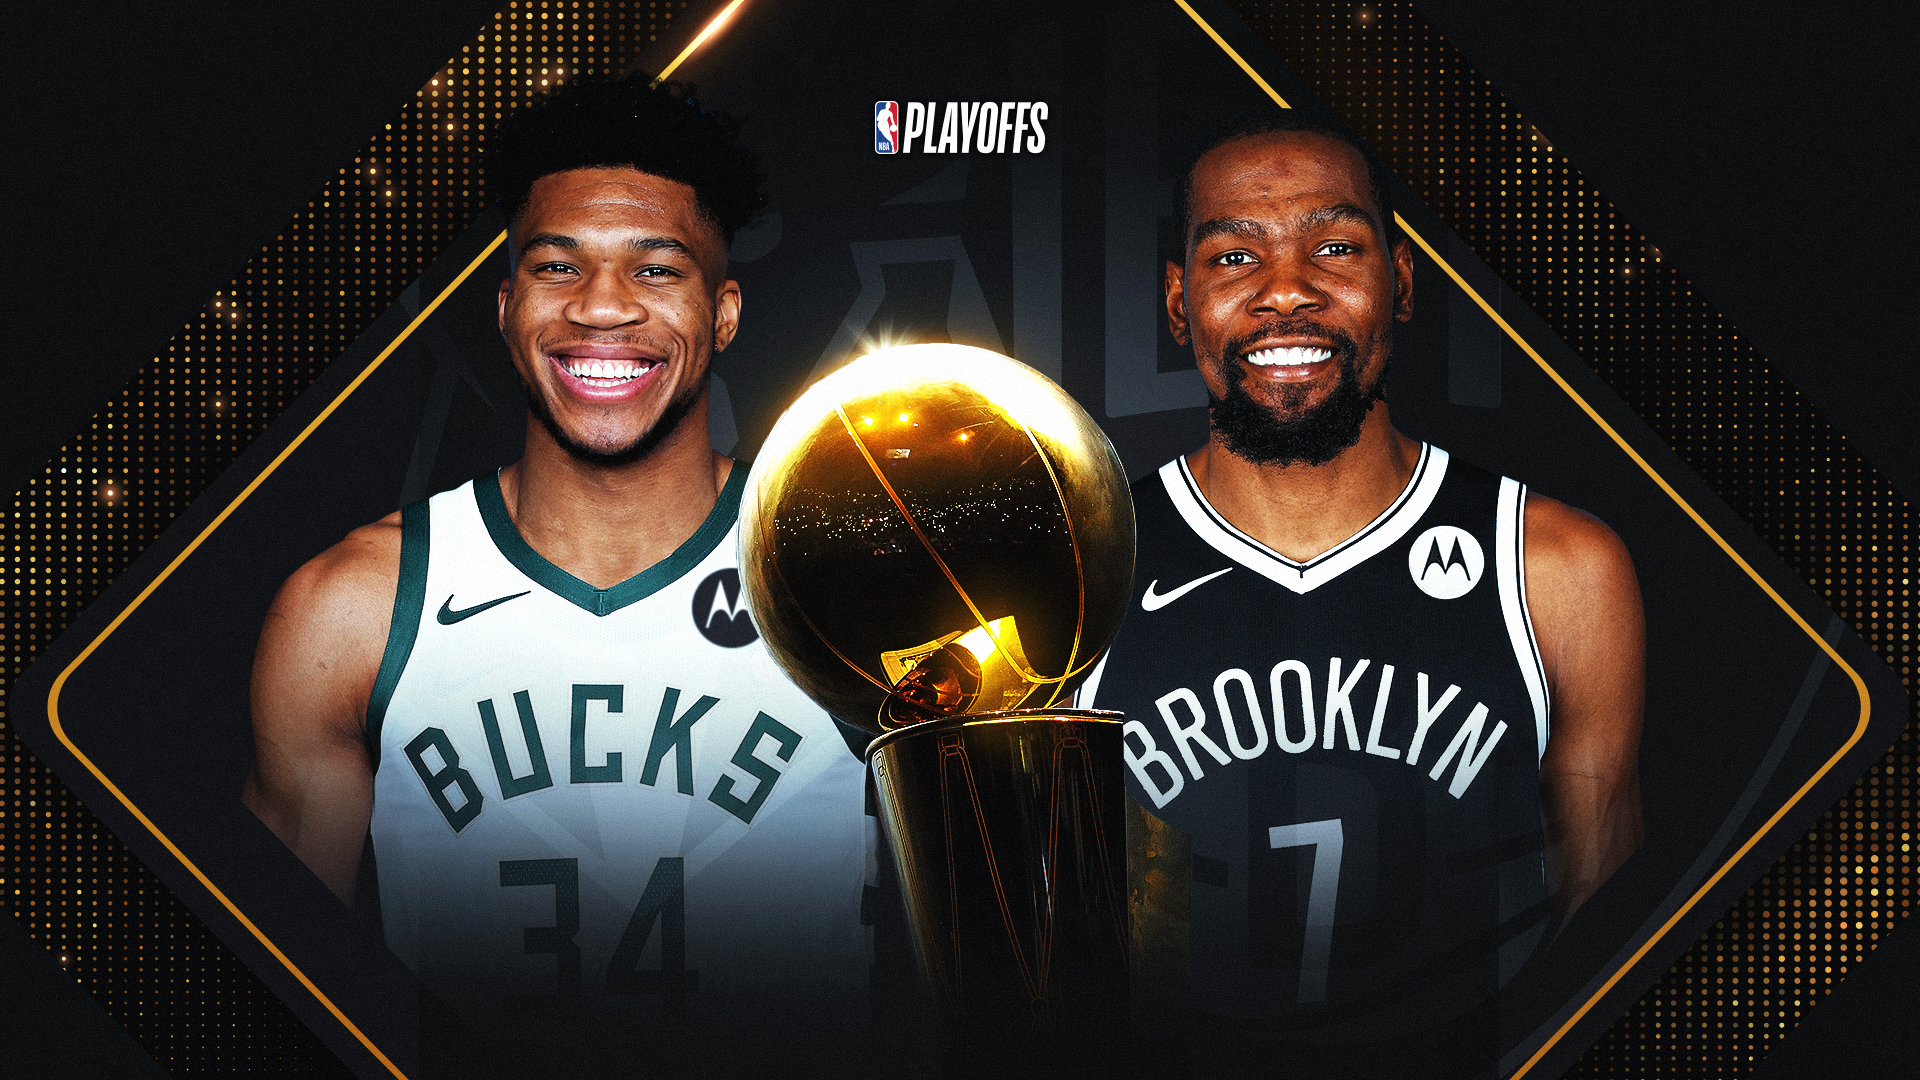 Series Preview: Nets-Bucks features star power, contrast of styles